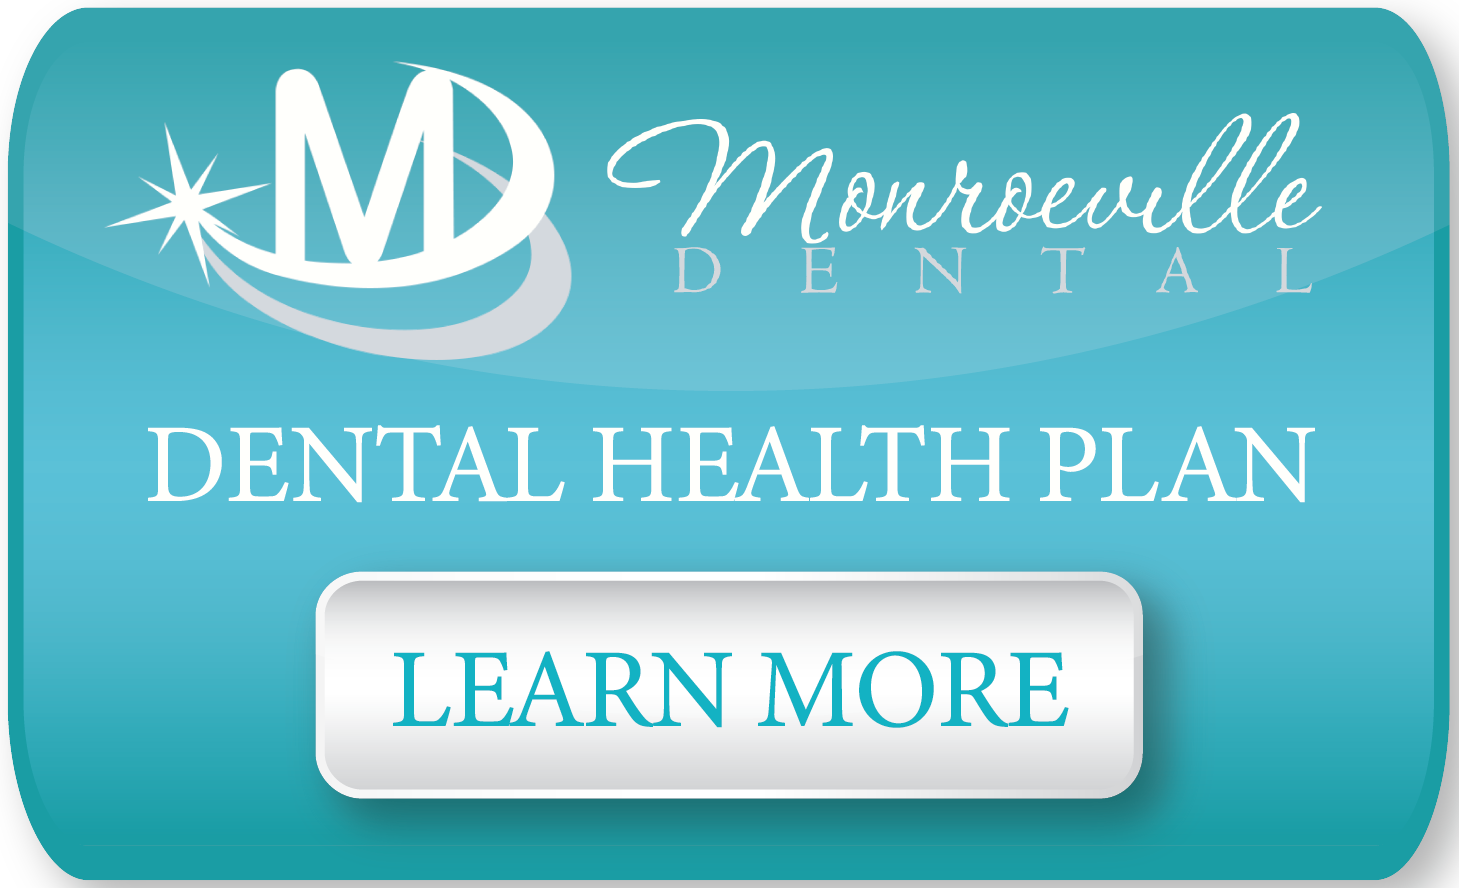 Dental Health plan